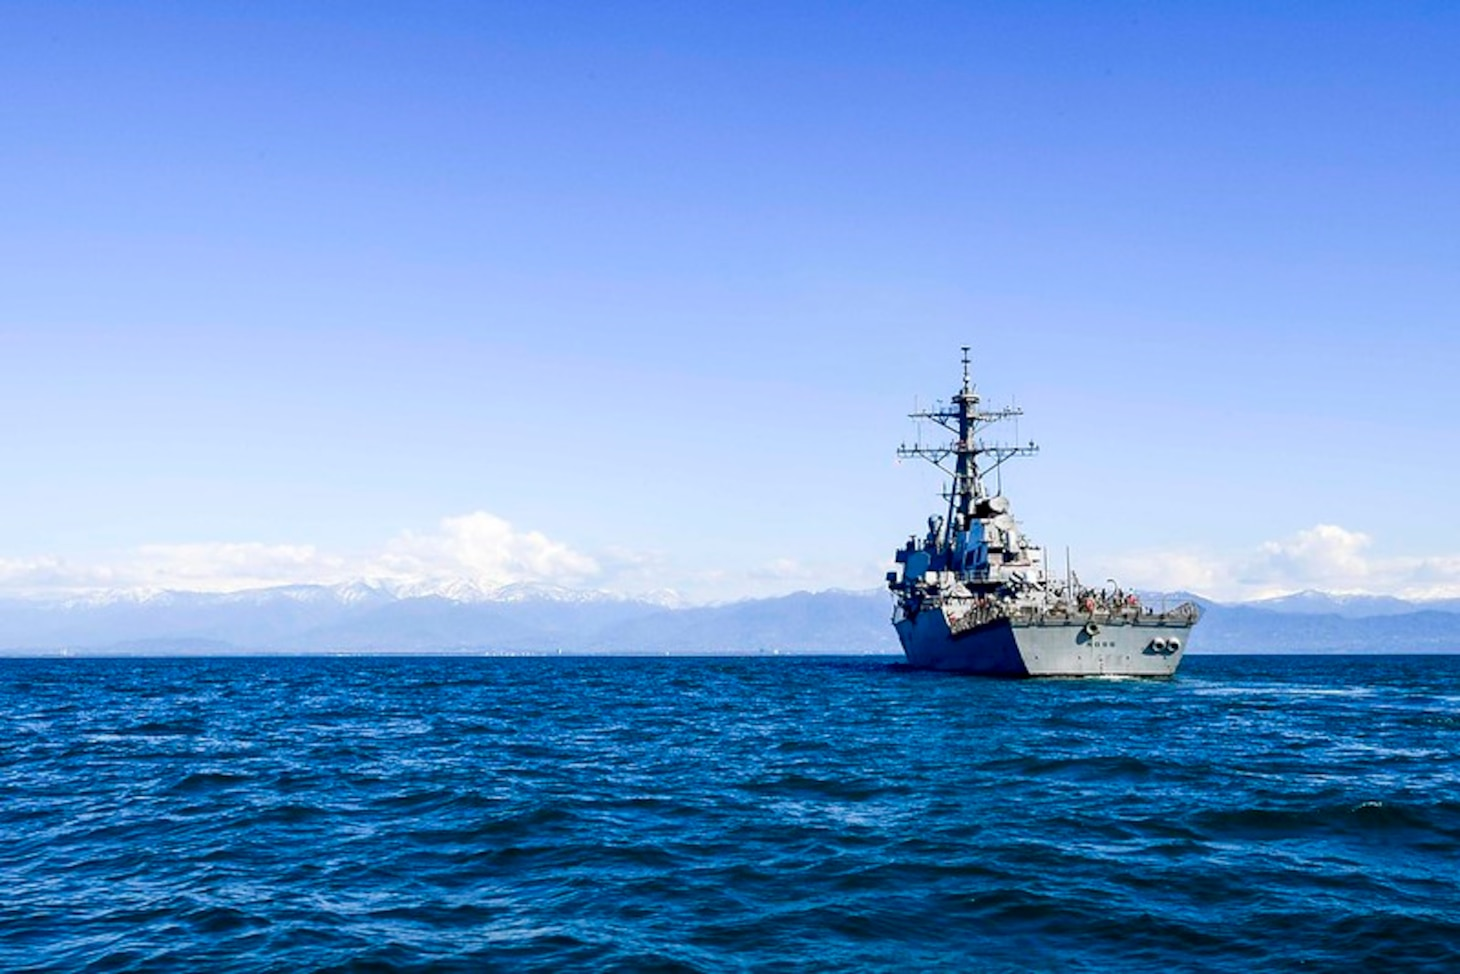 (April 25, 2019) - The Arleigh Burke-class guided-missile destroyer USS Ross (DDG 71) transits the Black Sea, April 25, 2019. Ross, forward-deployed to Rota, Spain, is on its eighth patrol in the U.S. 6th Fleet area of operations in support of U.S. national security interests in Europe and Africa. (U.S. Navy photo by Mass Communication Specialist 2nd Class Krystina Coffey/Released)